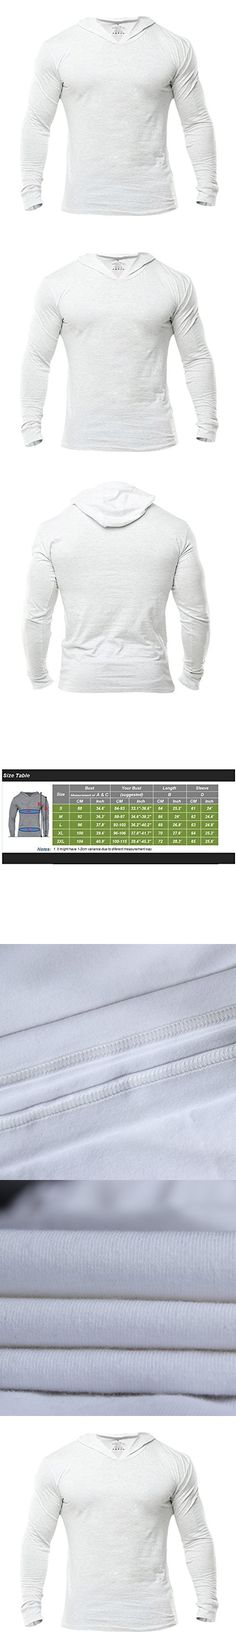 MUSCLE ALIVE Bodybuilding Long-sleeve Hoodie Casual Sweatshirts Stretchy Cotton White Plain Color Size M